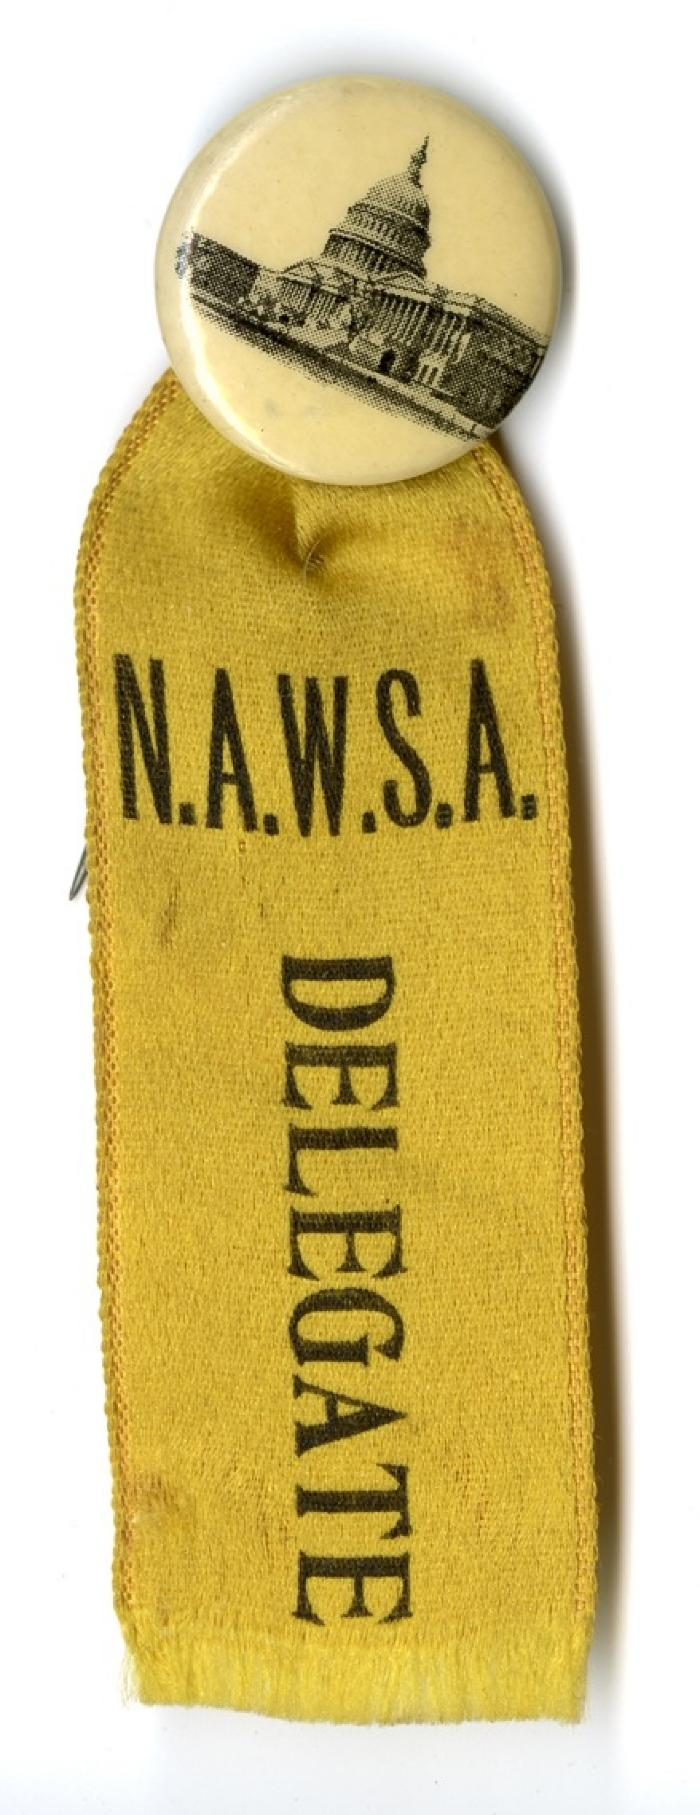 N.A.W.S.A. delegate button and ribbon